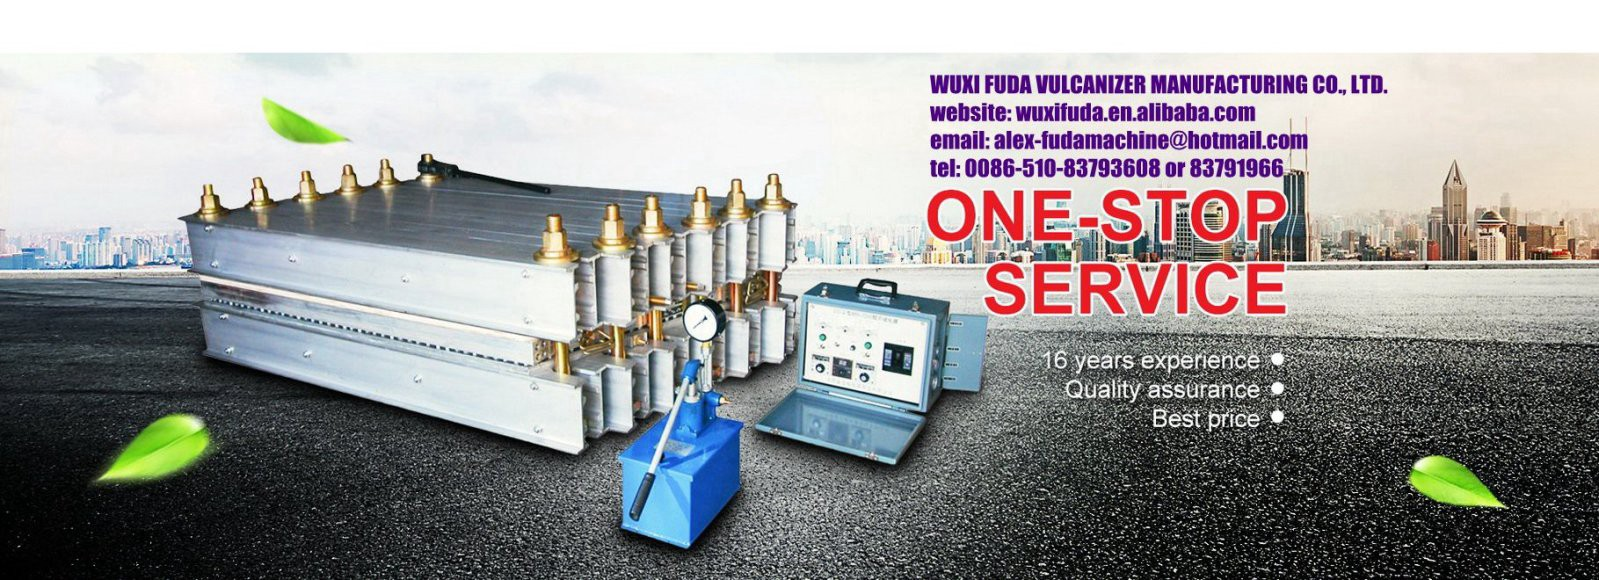 Government certified biggest mining machinery supplier, Wuxi Fuda